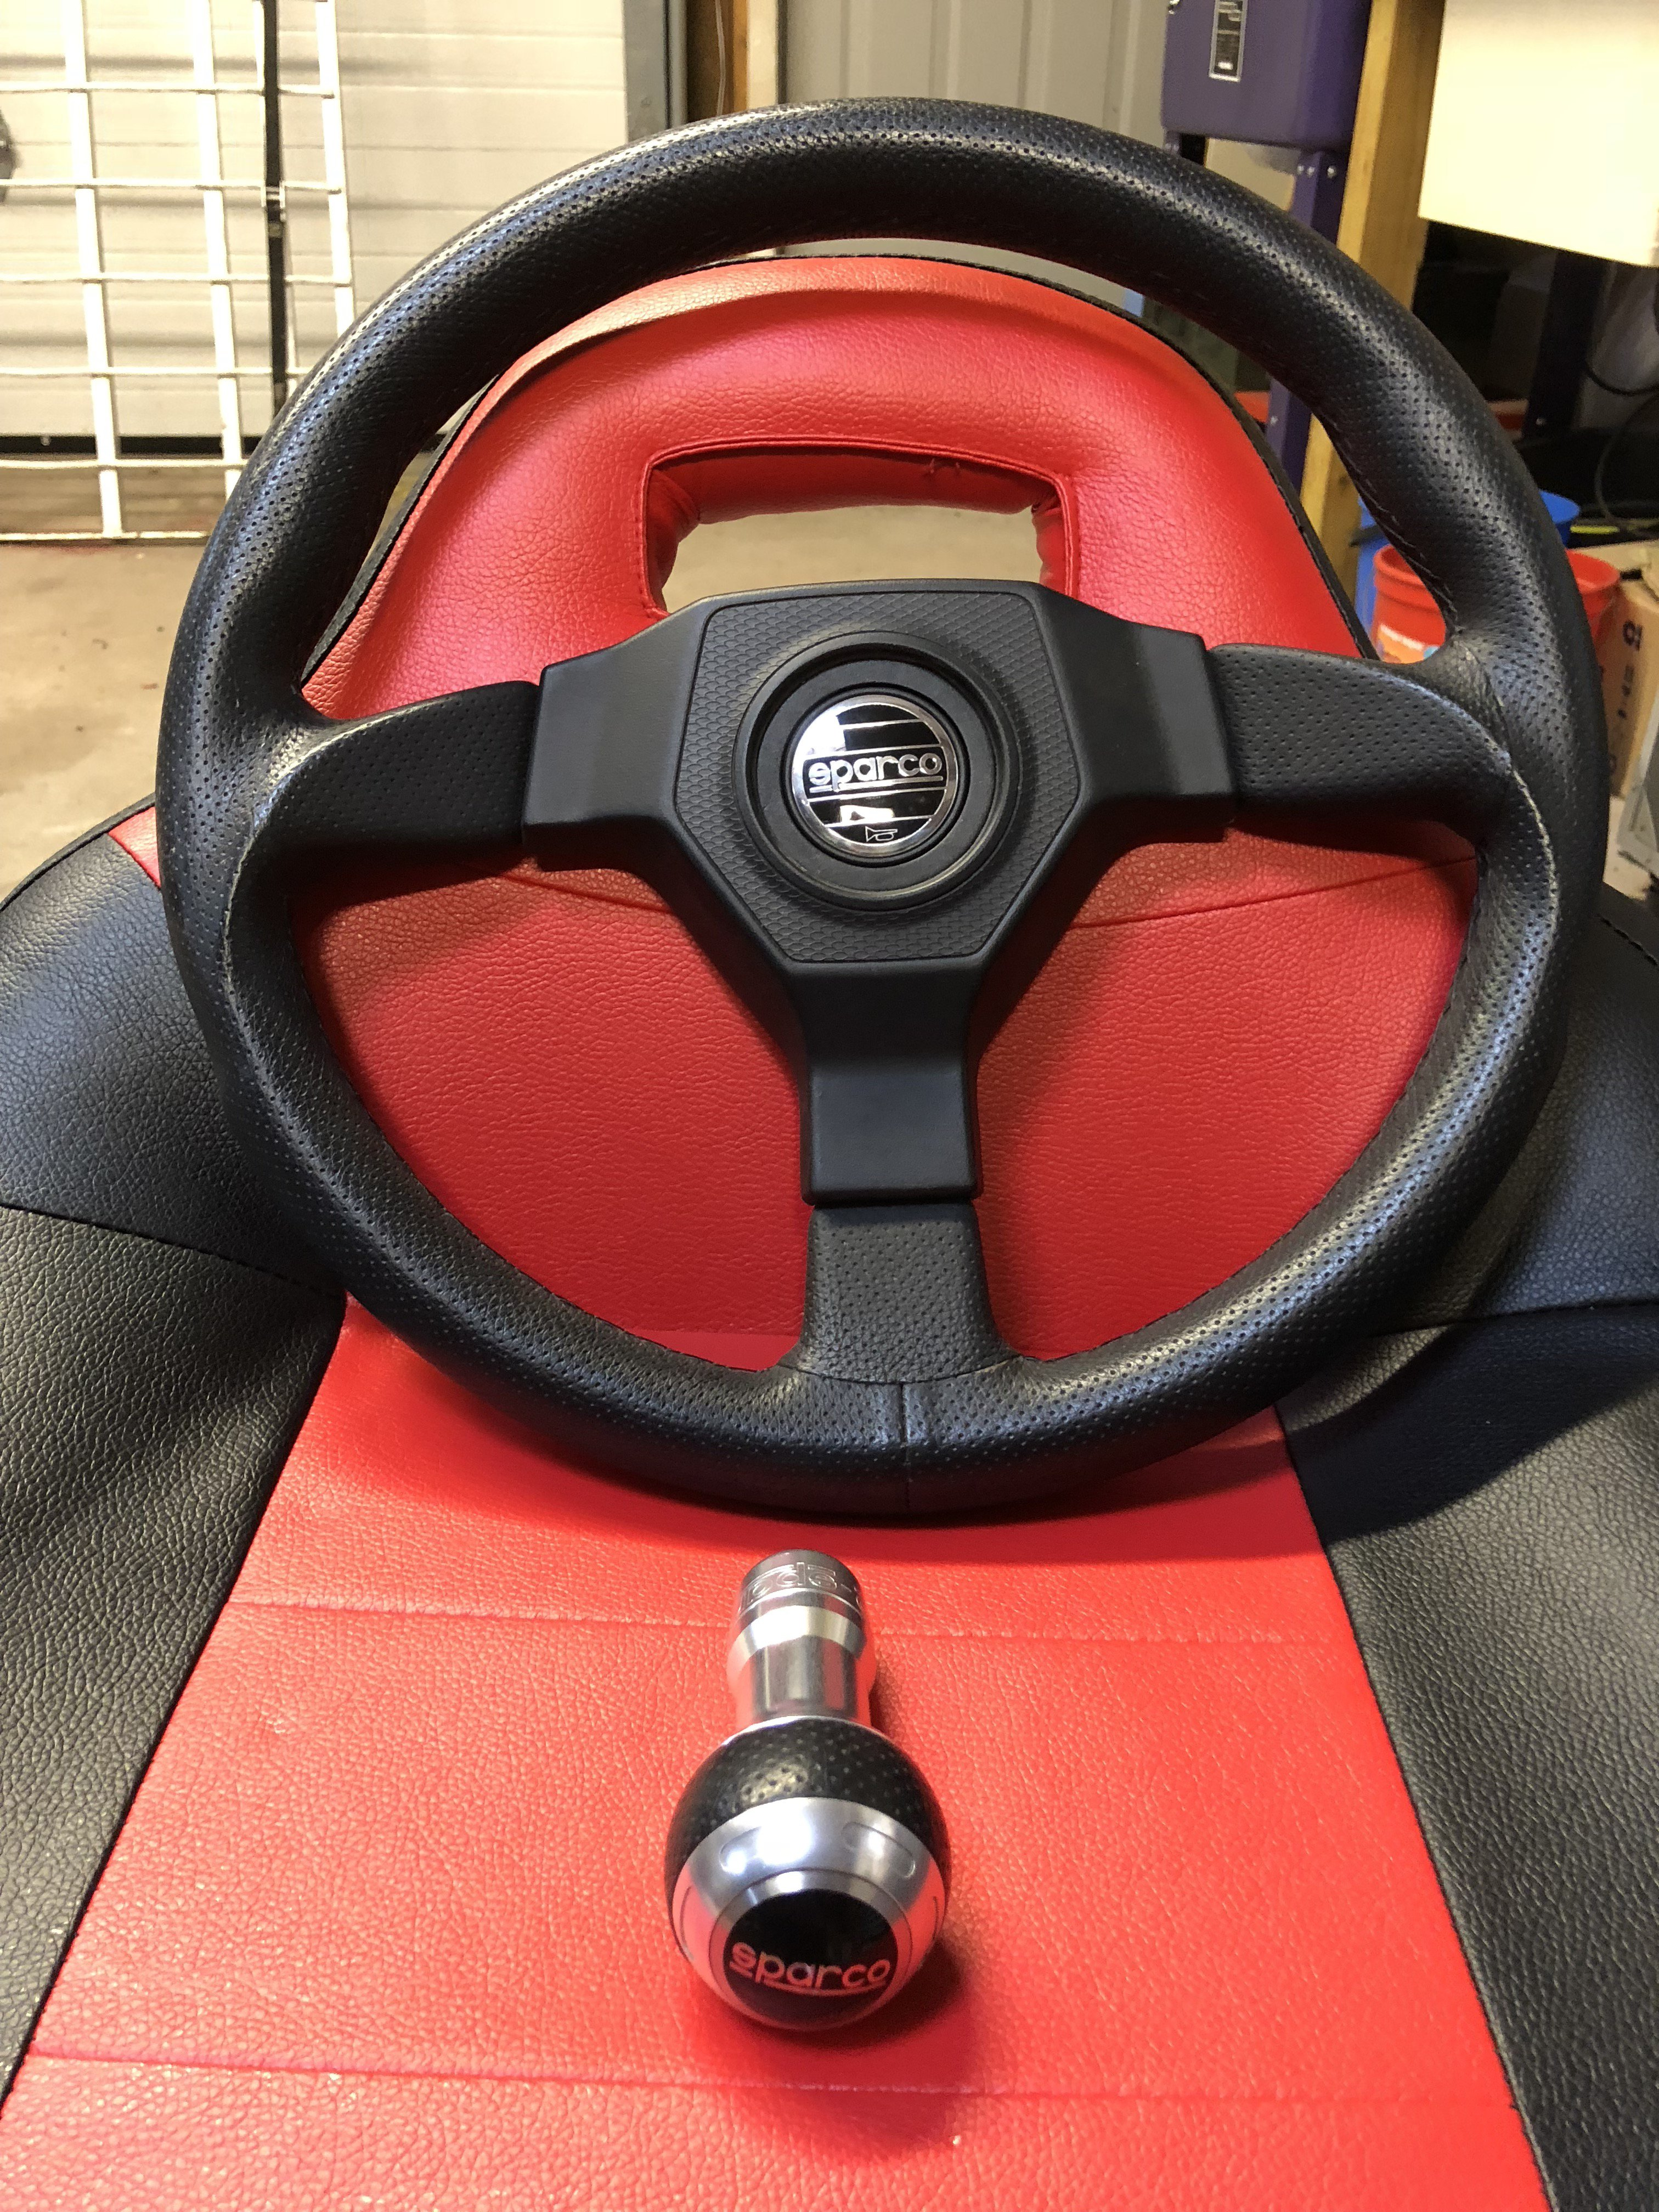 Sold! - Sparco Shifter / Steering Wheel | Polaris Slingshot Forum